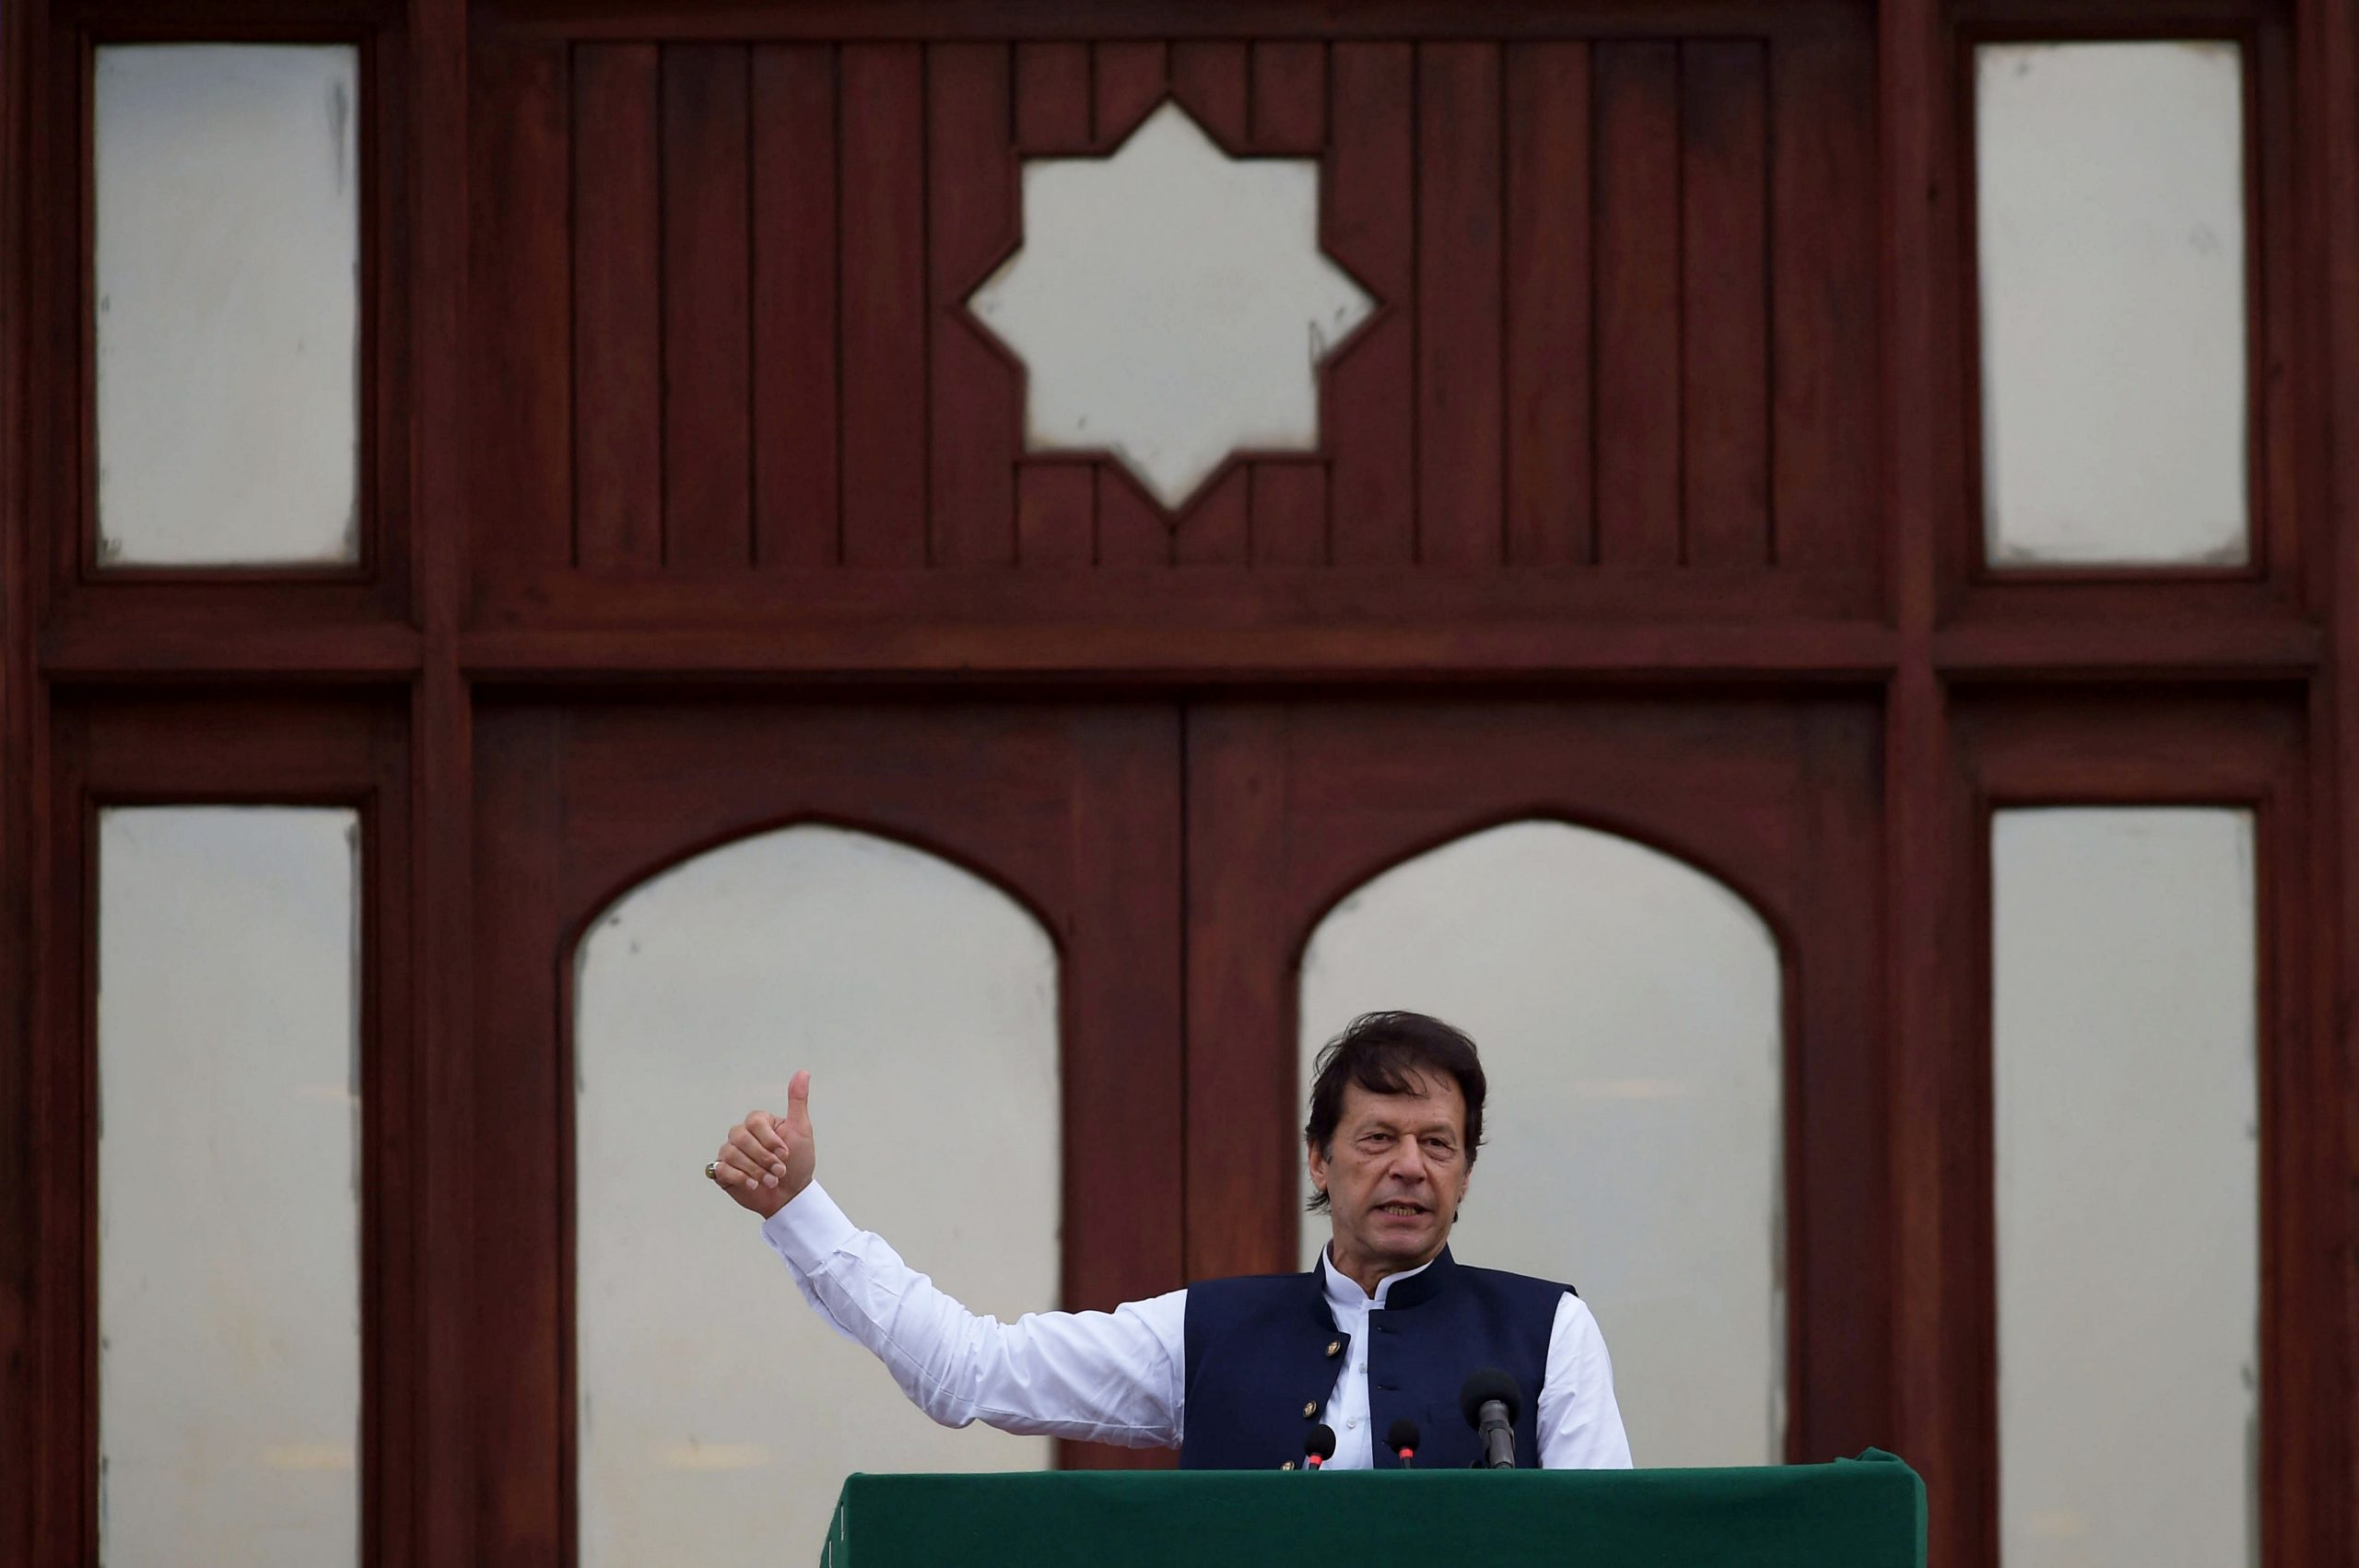 Pakistan's Prime Minister Imran Khan gestures as he speaks during a countrywide 'Kashmir Hour' demonstration to express solidarity with the people of Kashmir, at the Prime Minister's House in Islamabad, Pakistan, August 30, 2019. REUTERS/Stringer